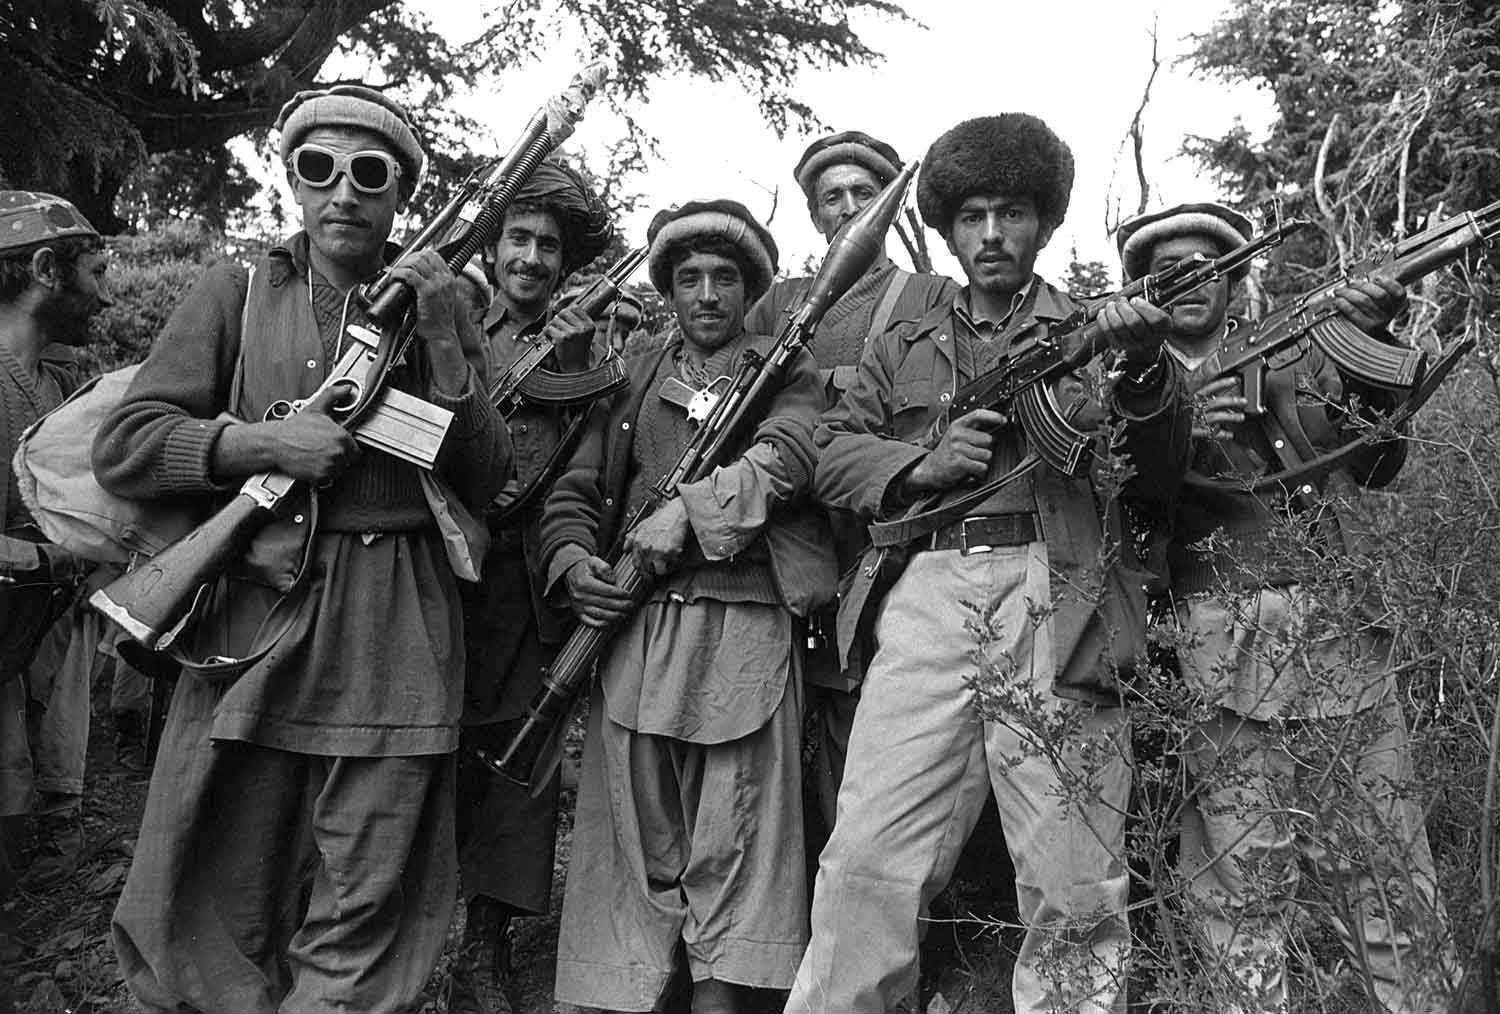 vietnam war vs soviet afghan war The afghan pro soviet communists supported china's enemies in vietnam and blamed china for supporting afghan anti communist militants china responded to the soviet war in afghanistan by supporting the afghan mujahideen and ramping up their military presence near afghanistan in xinjiang.